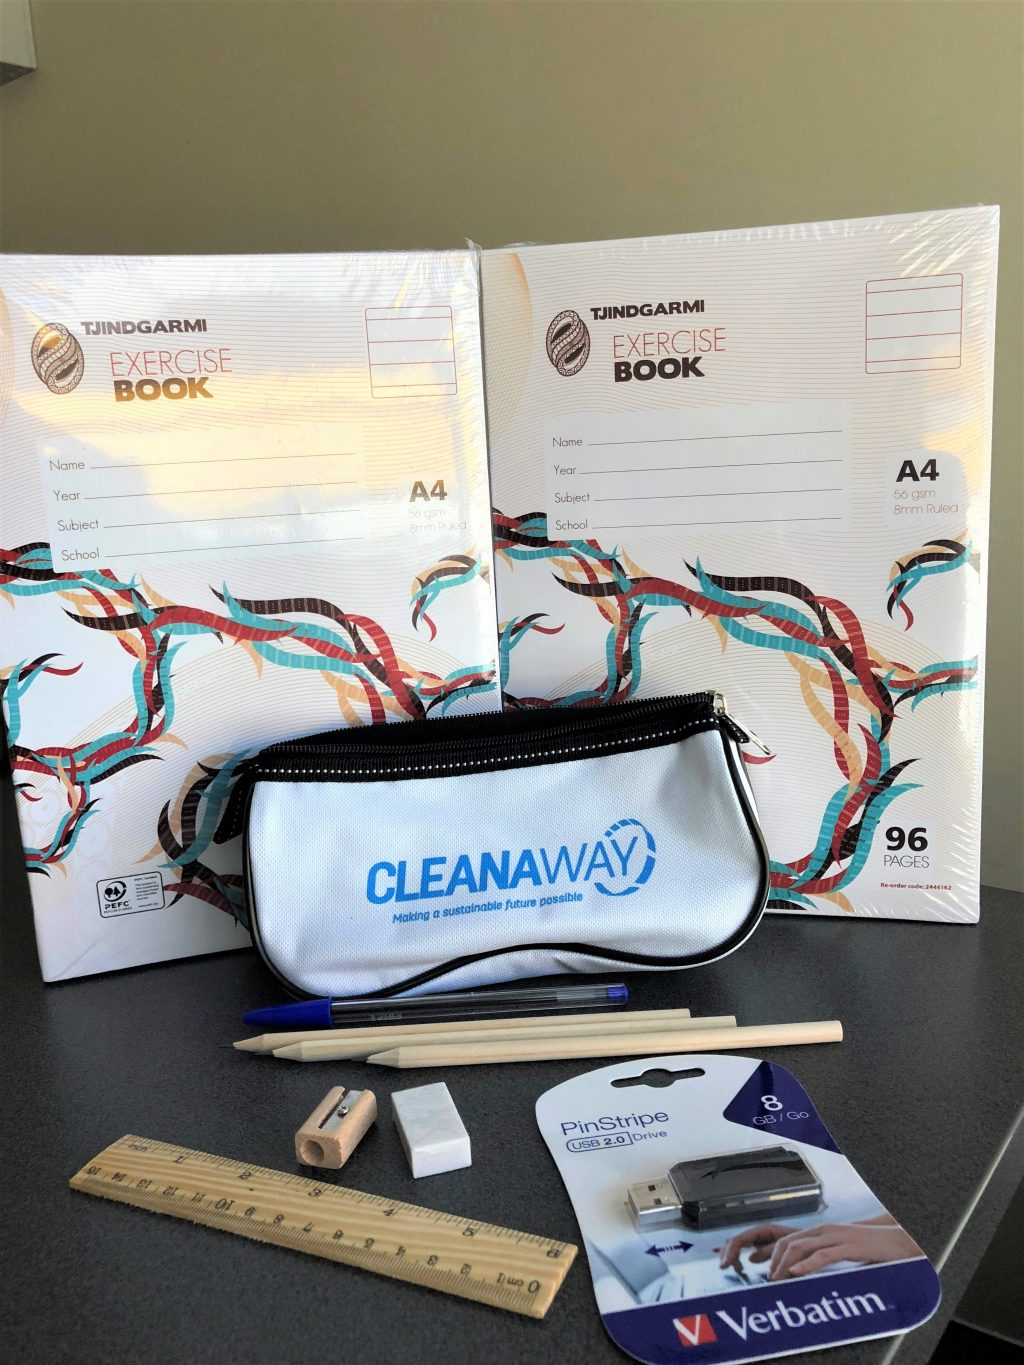 Cleanaway's merchandise team and prepared 100 school packs which contained pencils, rubbers, sharpeners, rulers, pens, exercise books and USB thumb drives